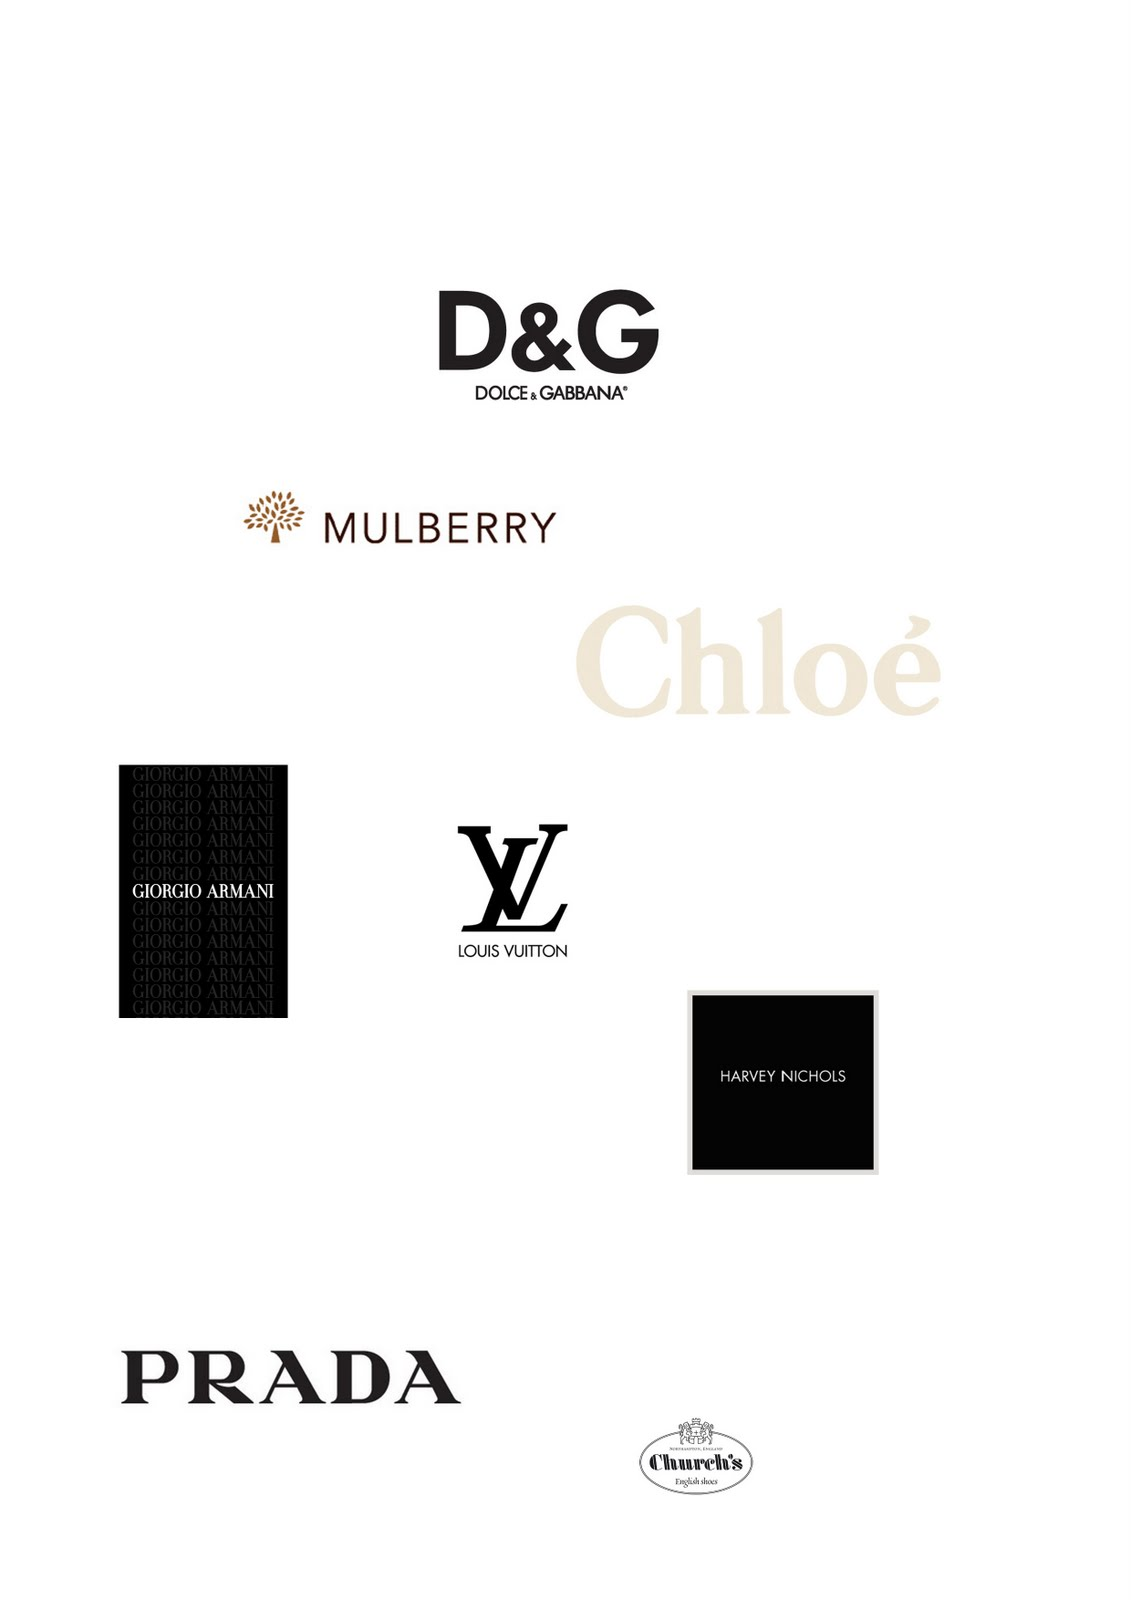 the gallery for gt high fashion designer logos